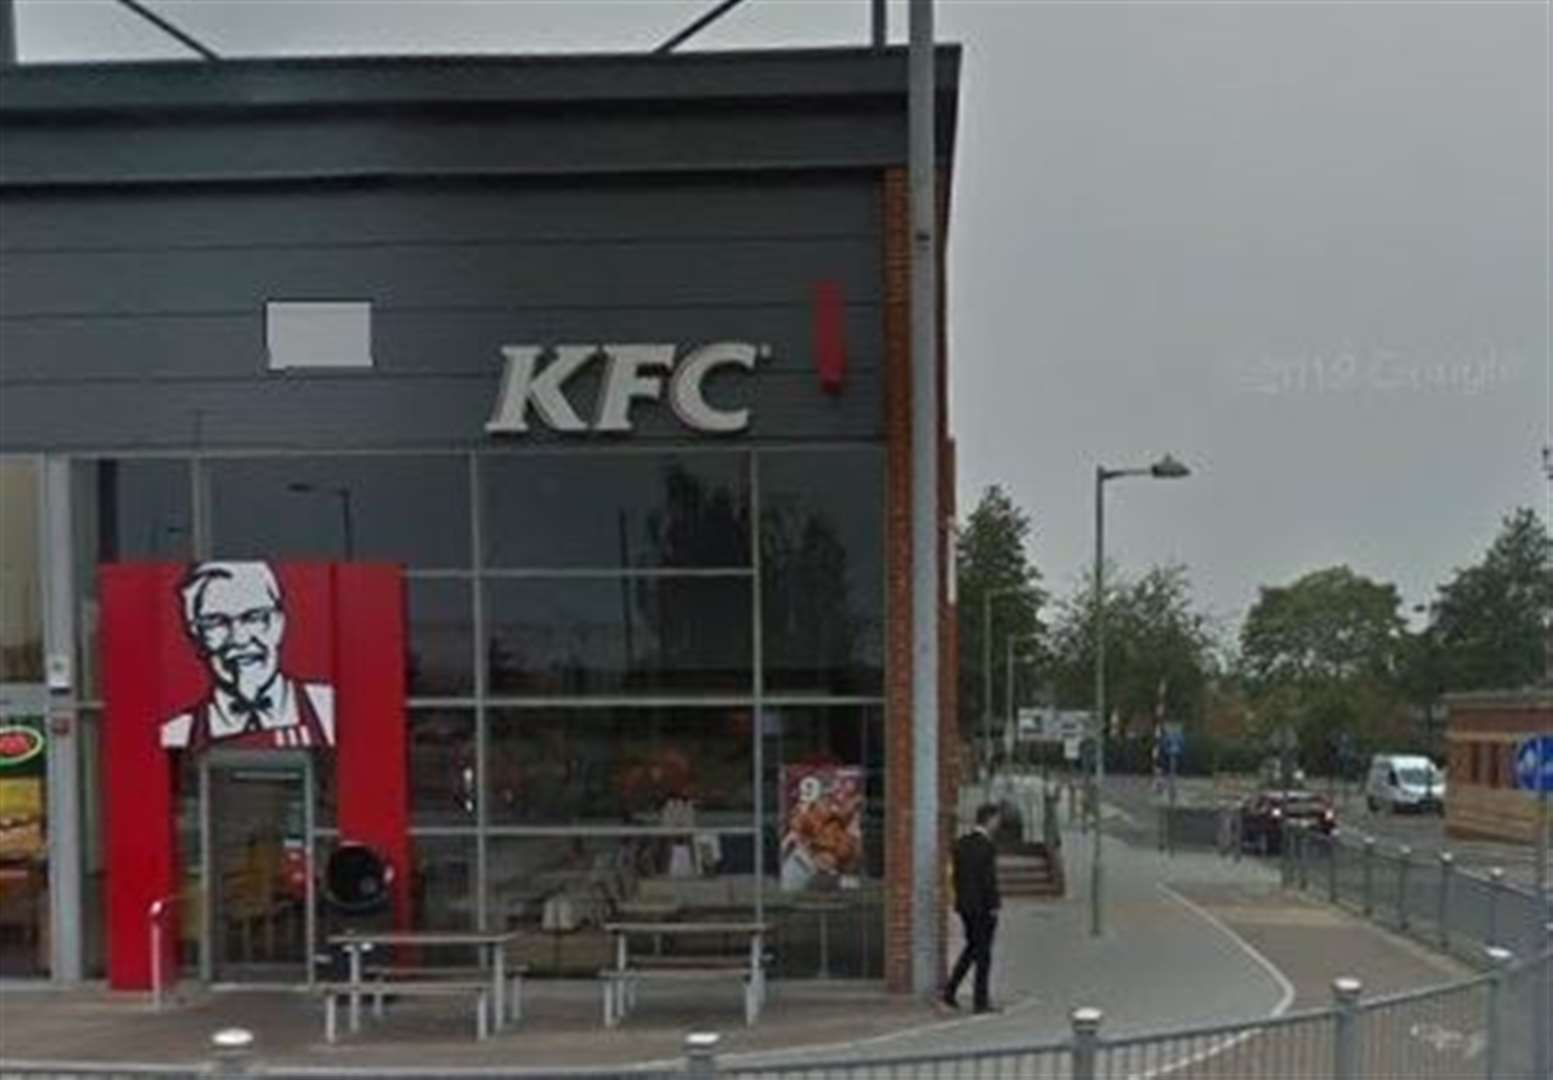 KFC targets new outlets in Bury St Edmunds, Mildenhall, Thetford and Stowmarket